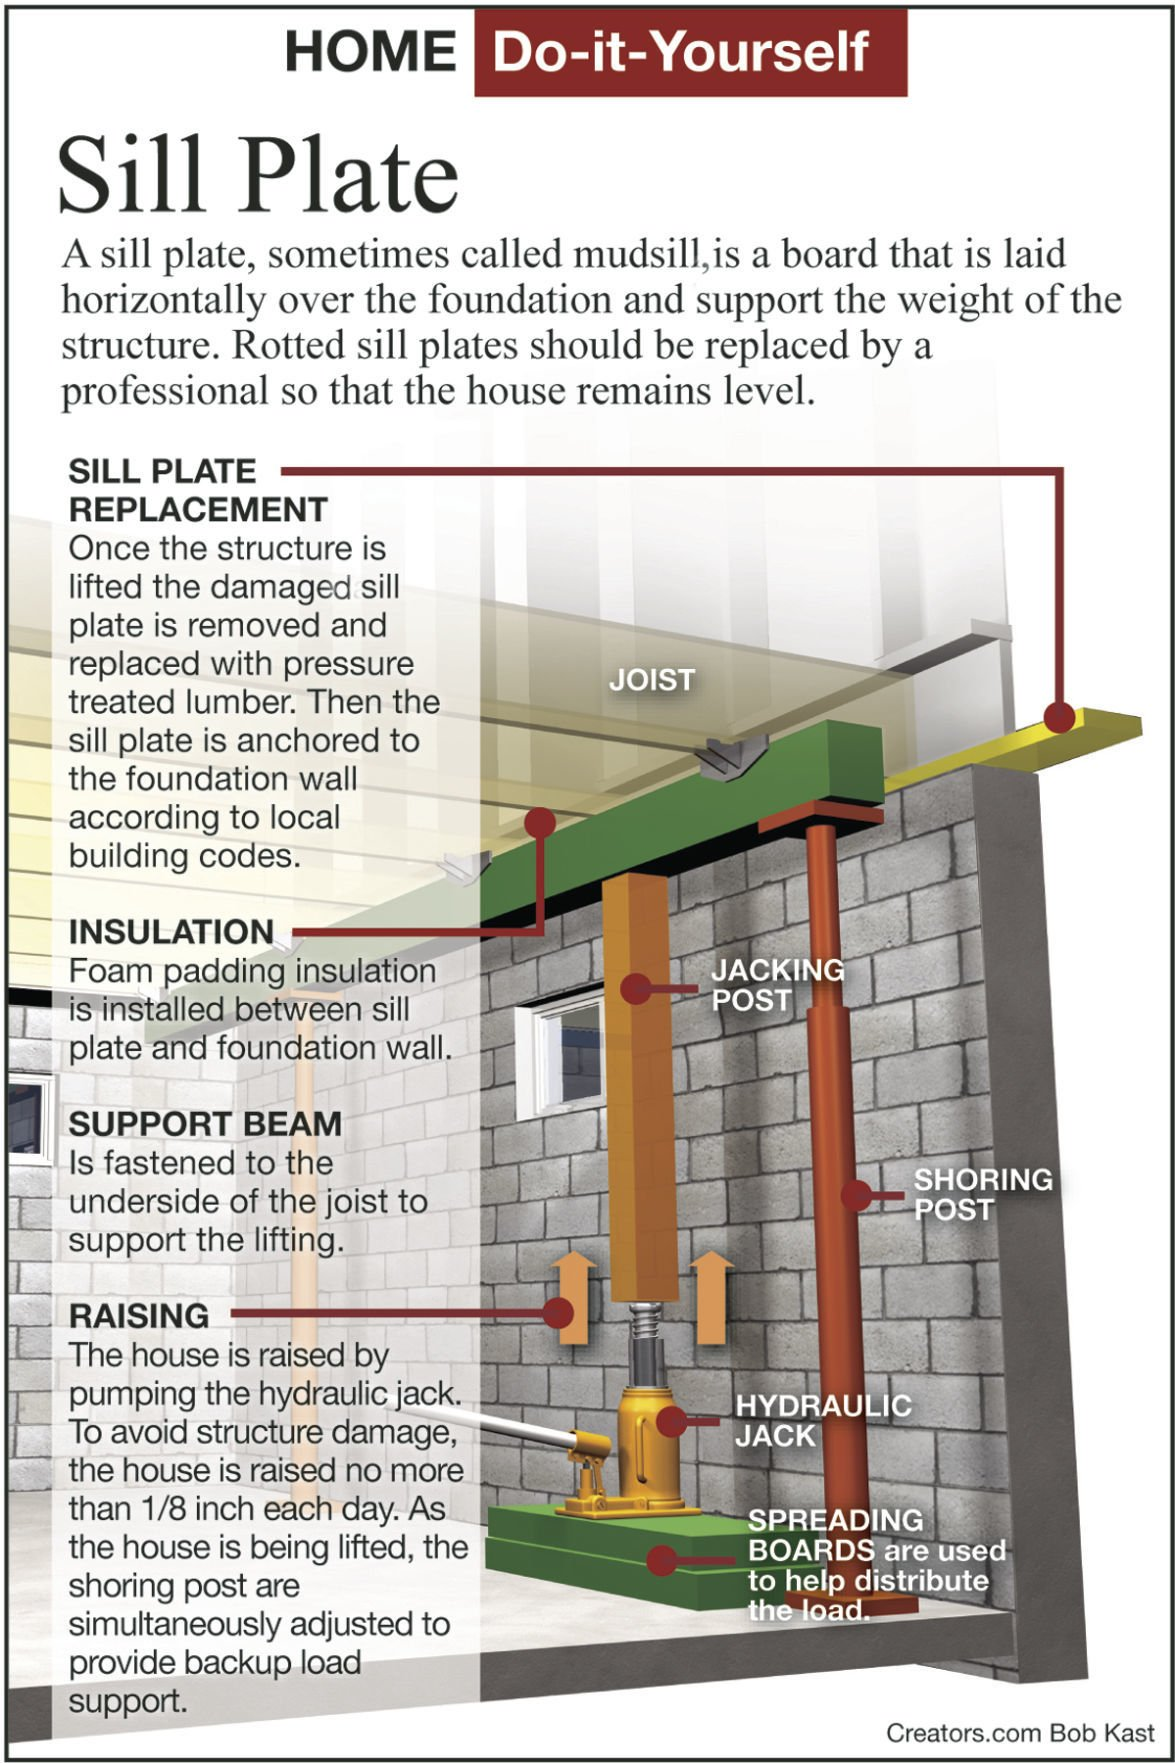 Heres How To Repair A Rotten Mudsill Siouxland Homes Hydraulic Jack Diagram Homehowto0705